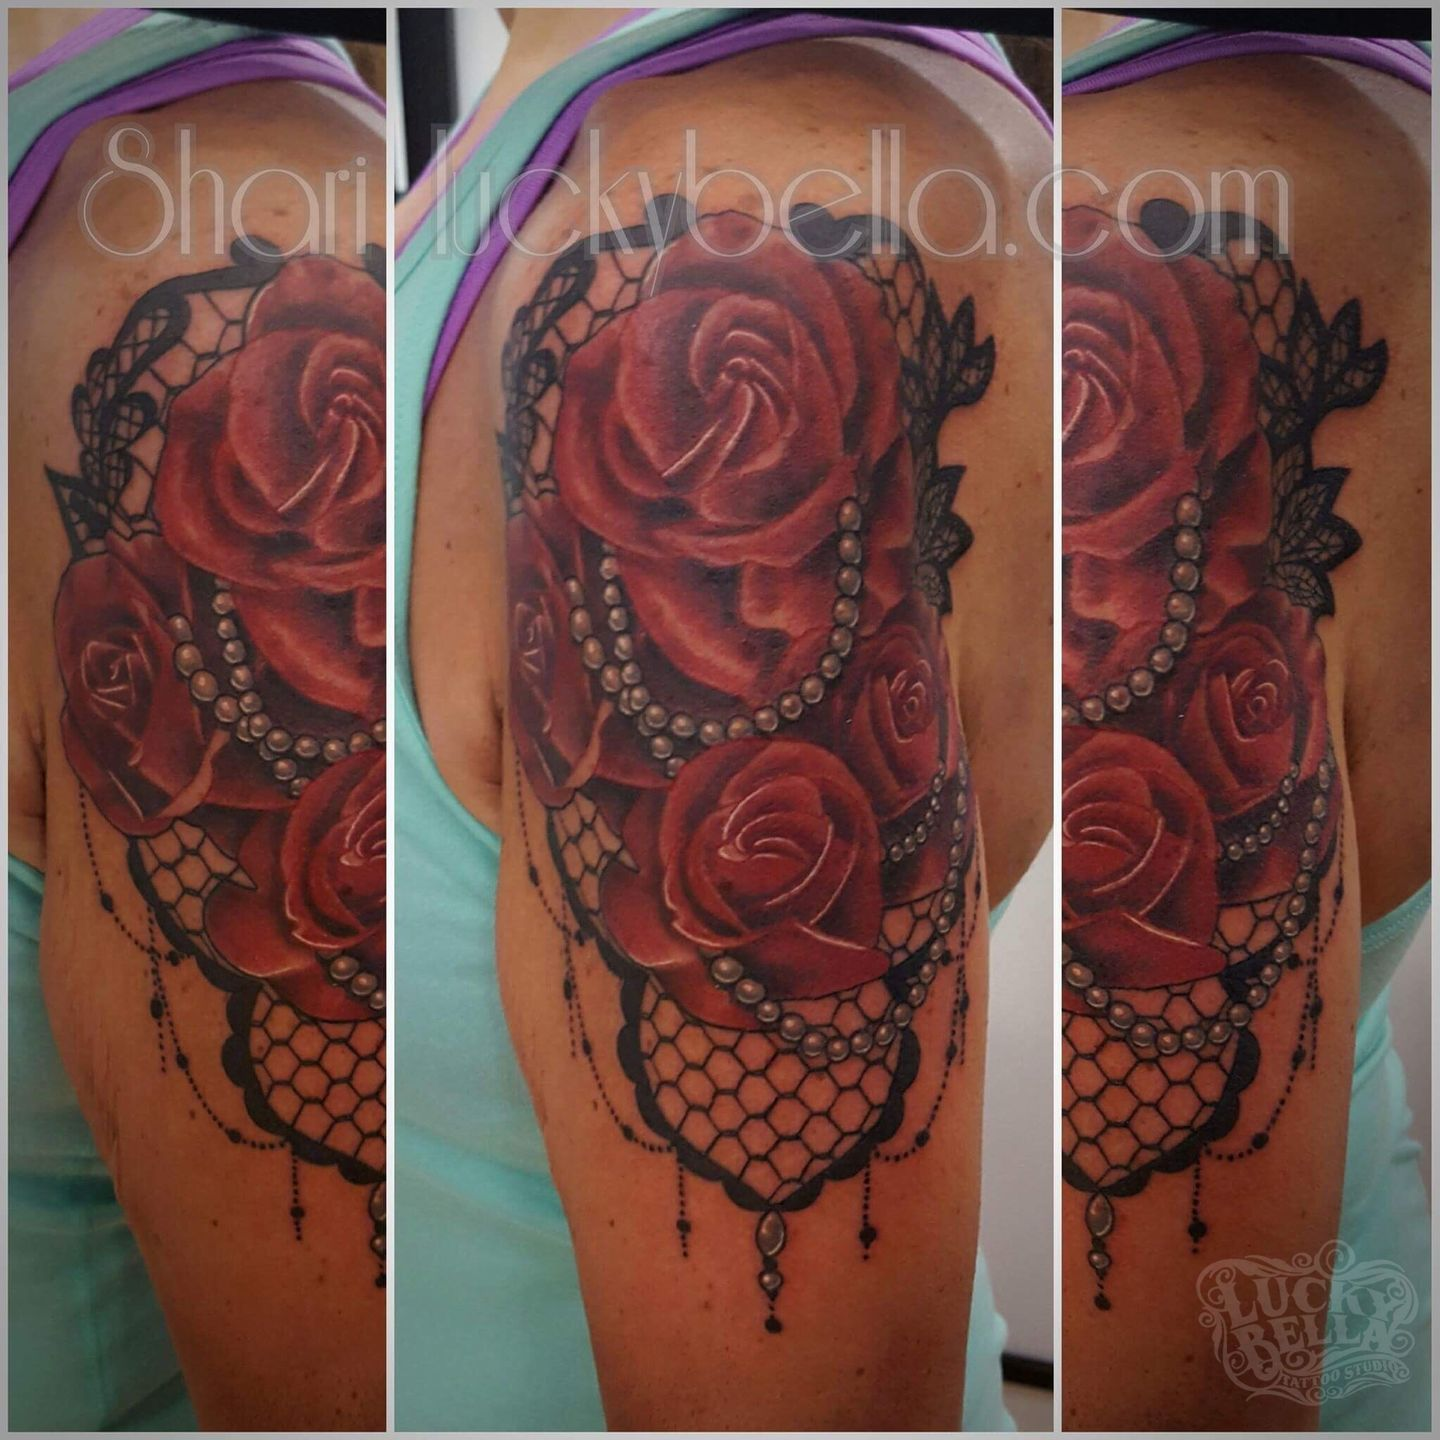 Shariquallsroses And Lace Color Red Rose Flowers Pearls Lace